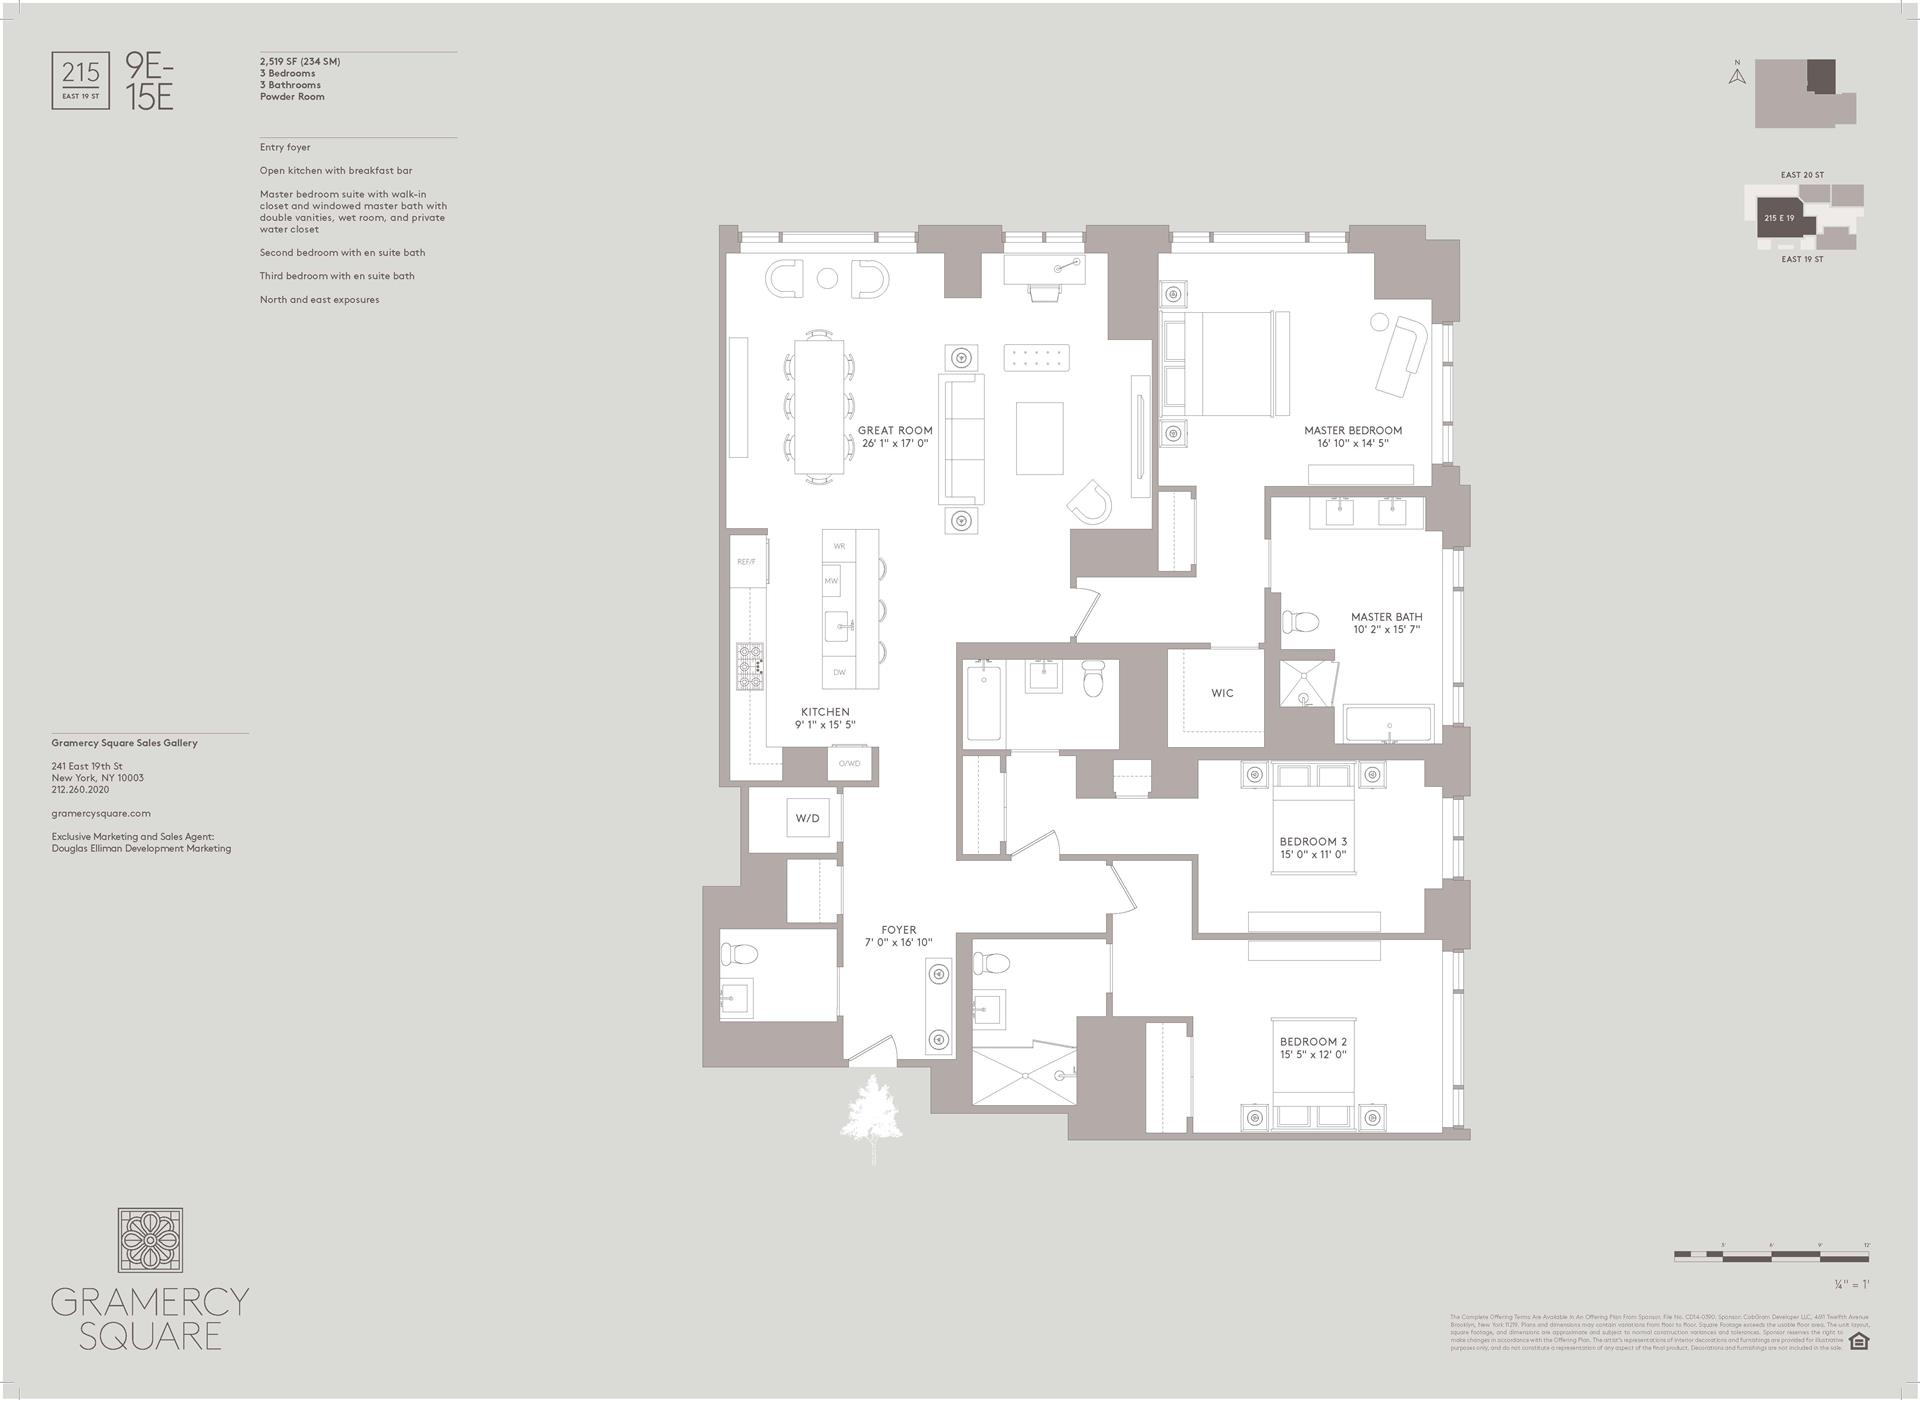 Floor plan of Gramercy Square, 215 East 19th St, 11E - Gramercy - Union Square, New York